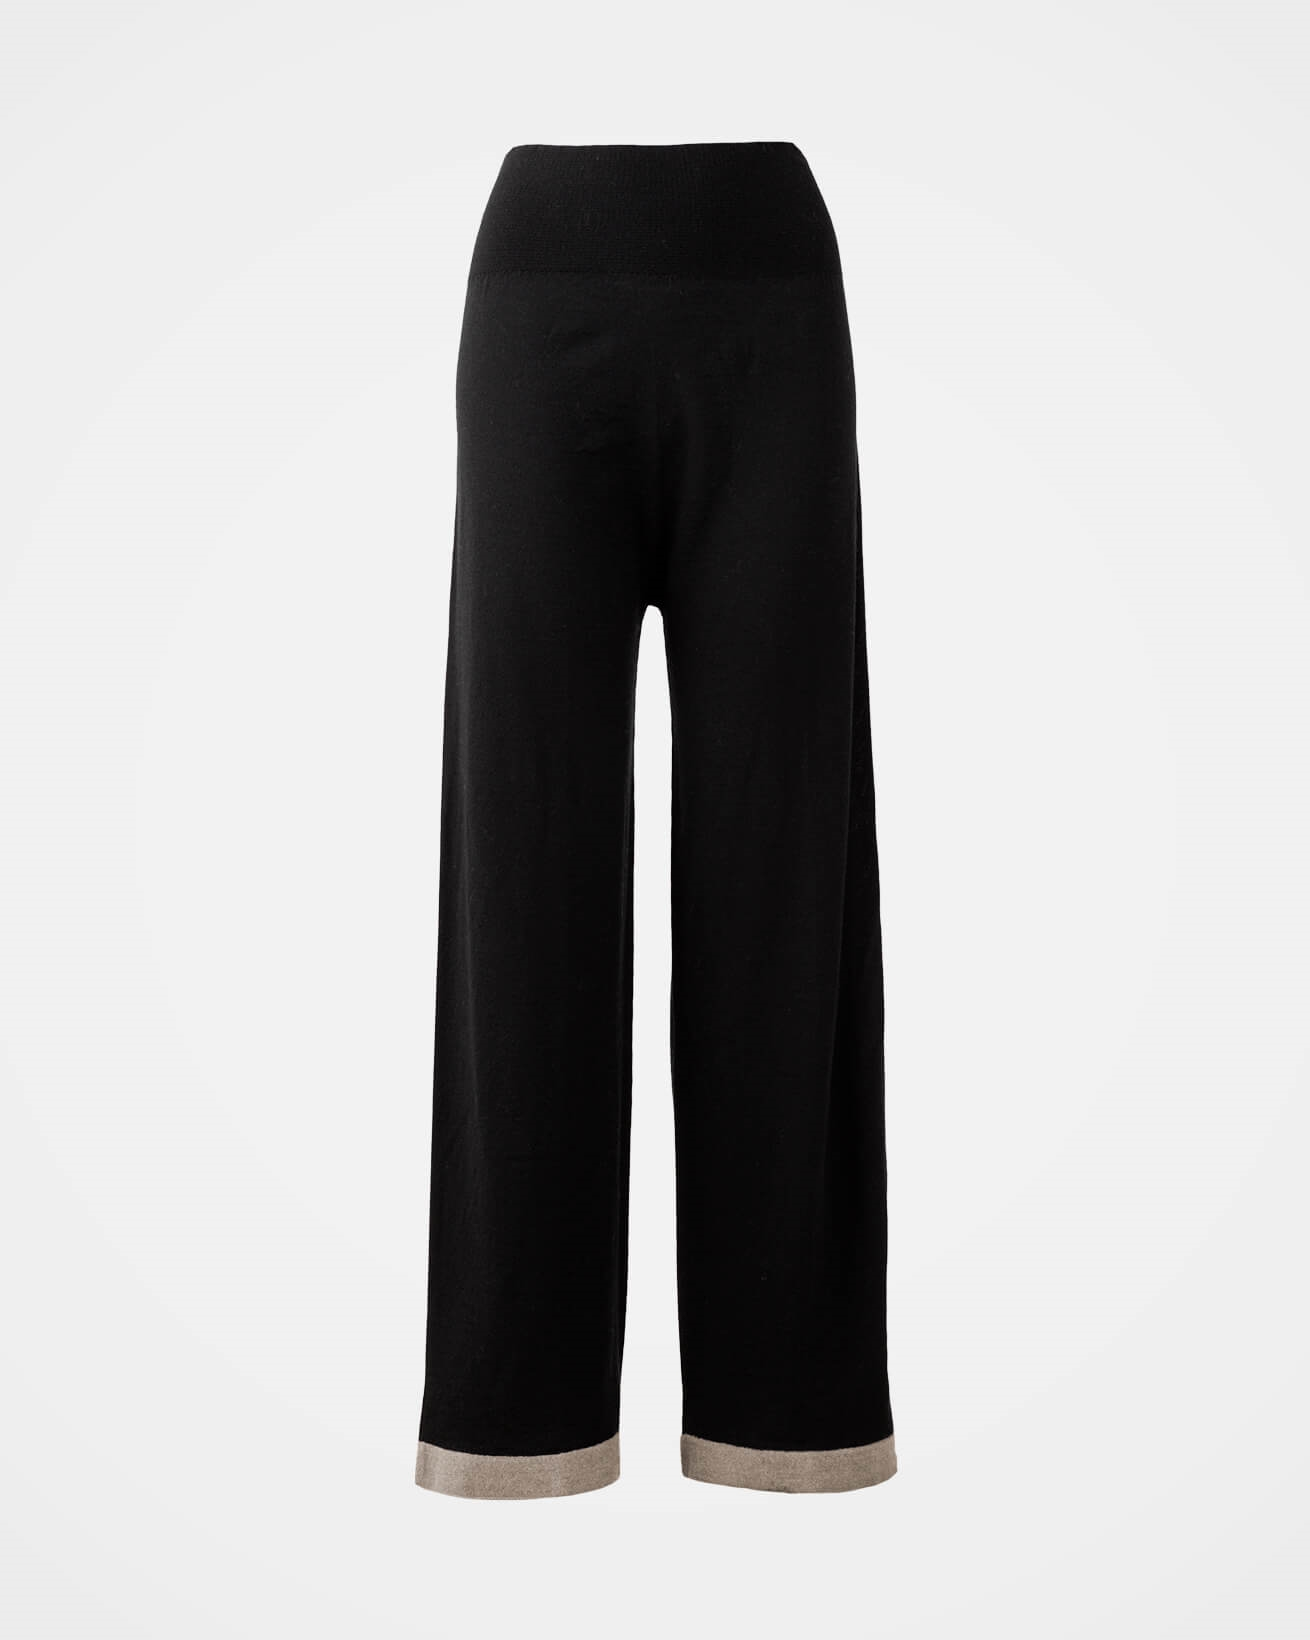 7432_wide-leg-merino-leggings_colourblock_front_web.jpg